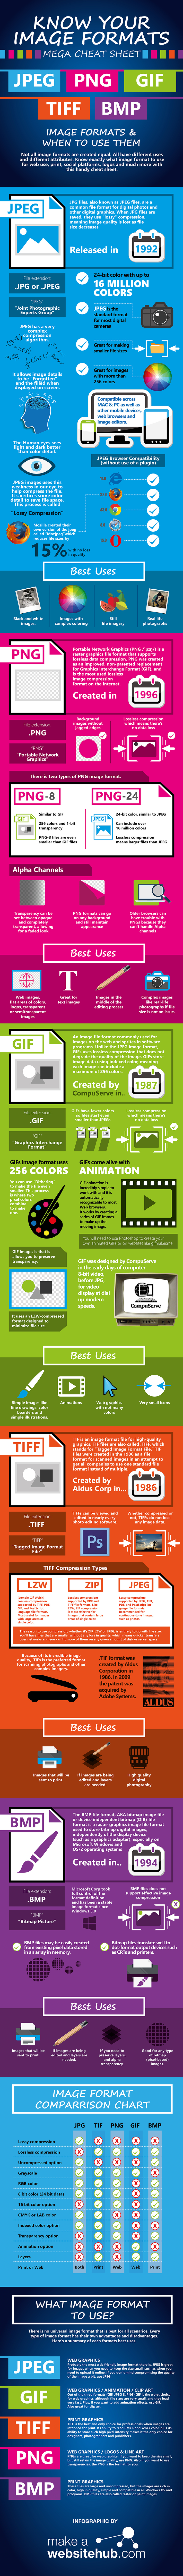 Image Formats Cheat Sheet All You Need To Know About Jpegs Tiffs